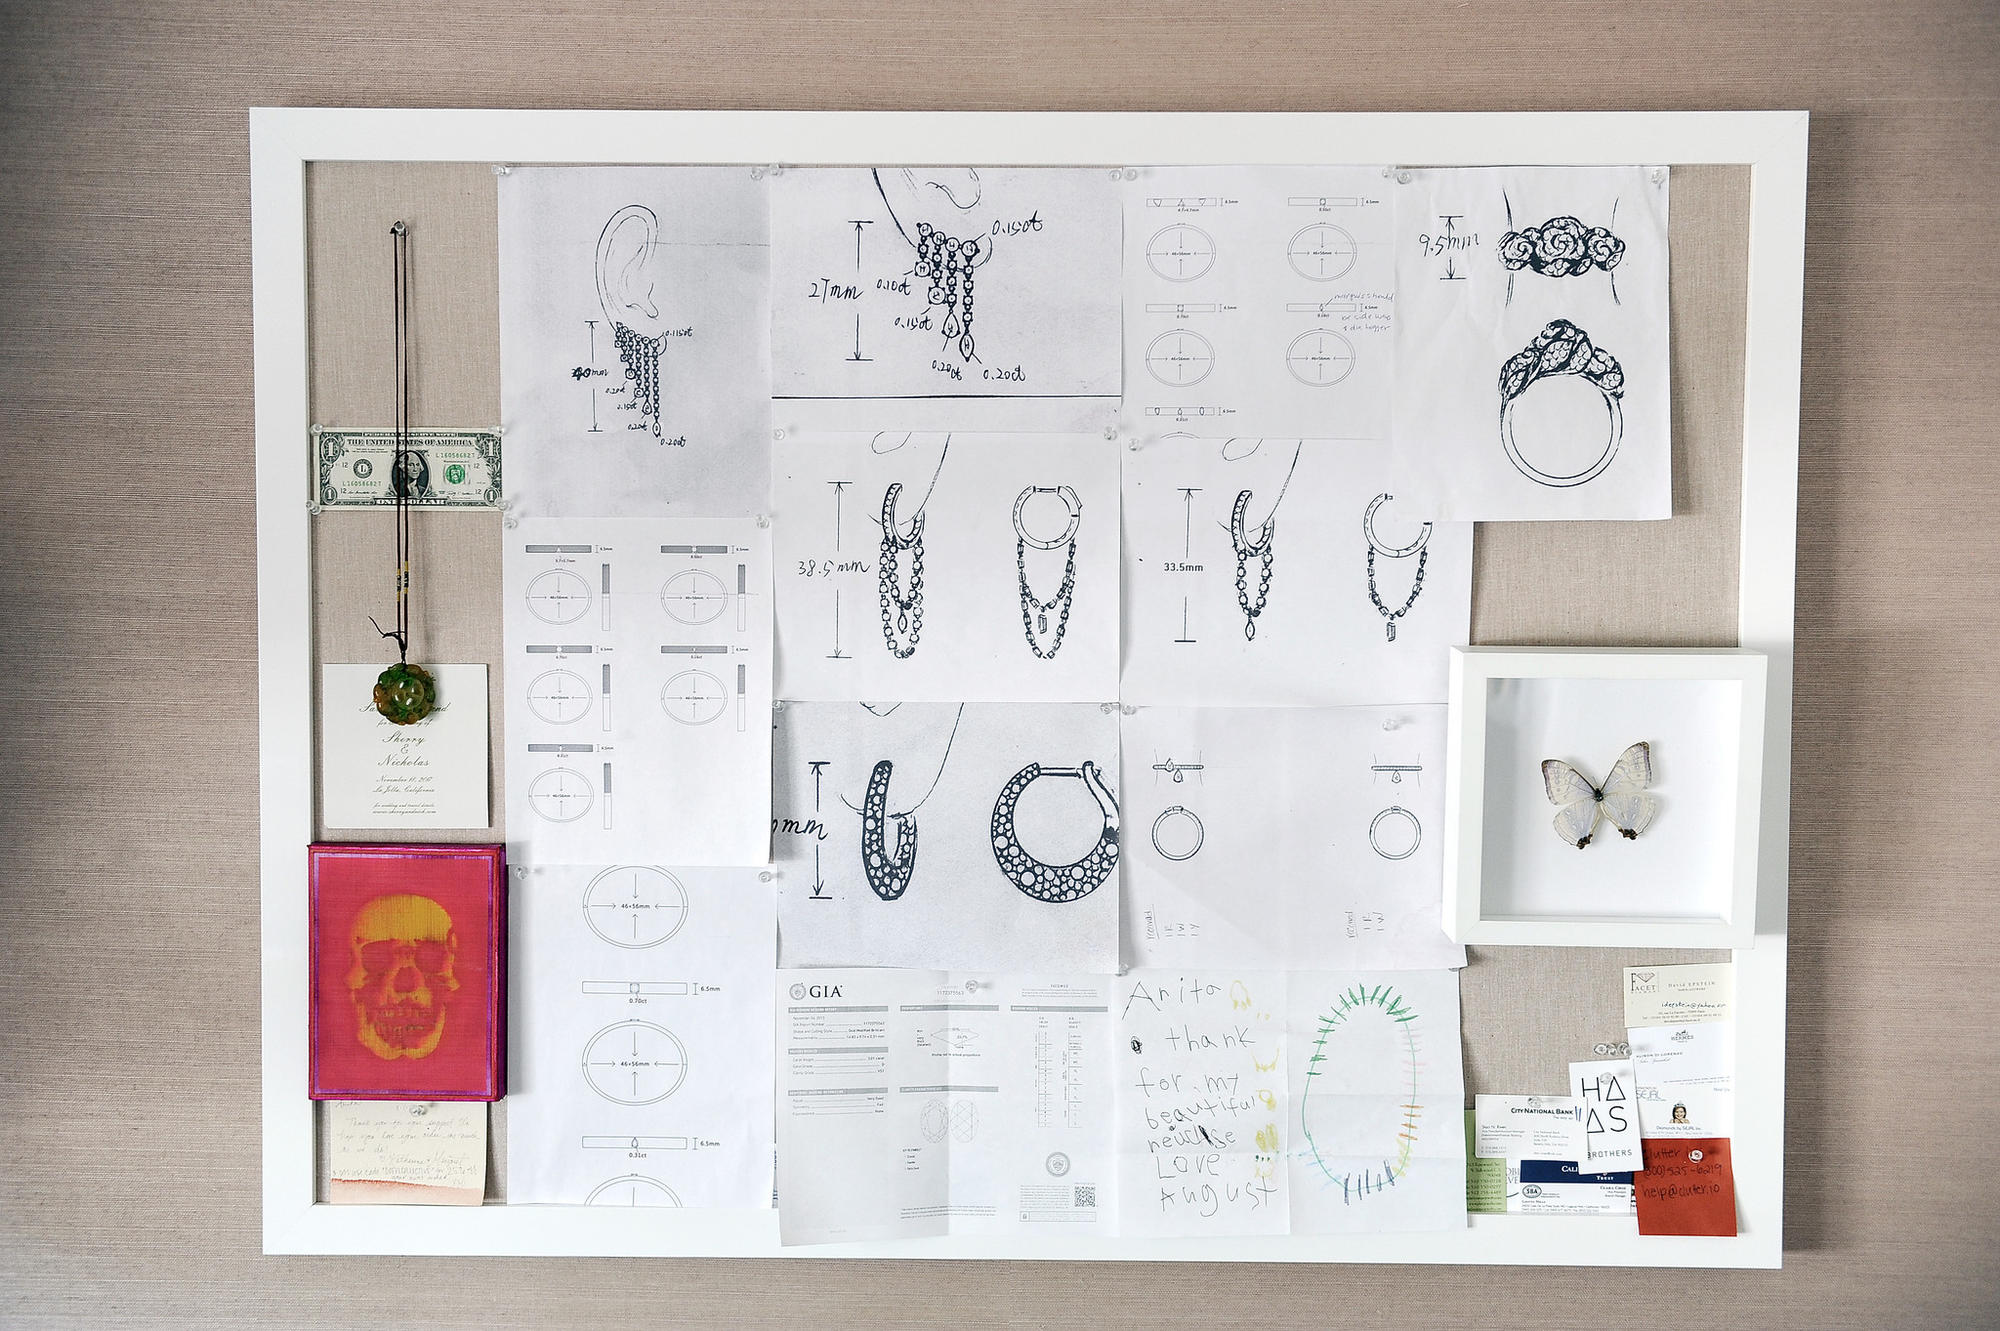 Jewelry designer Anita Ko's inspiration and design board hangs in her office.